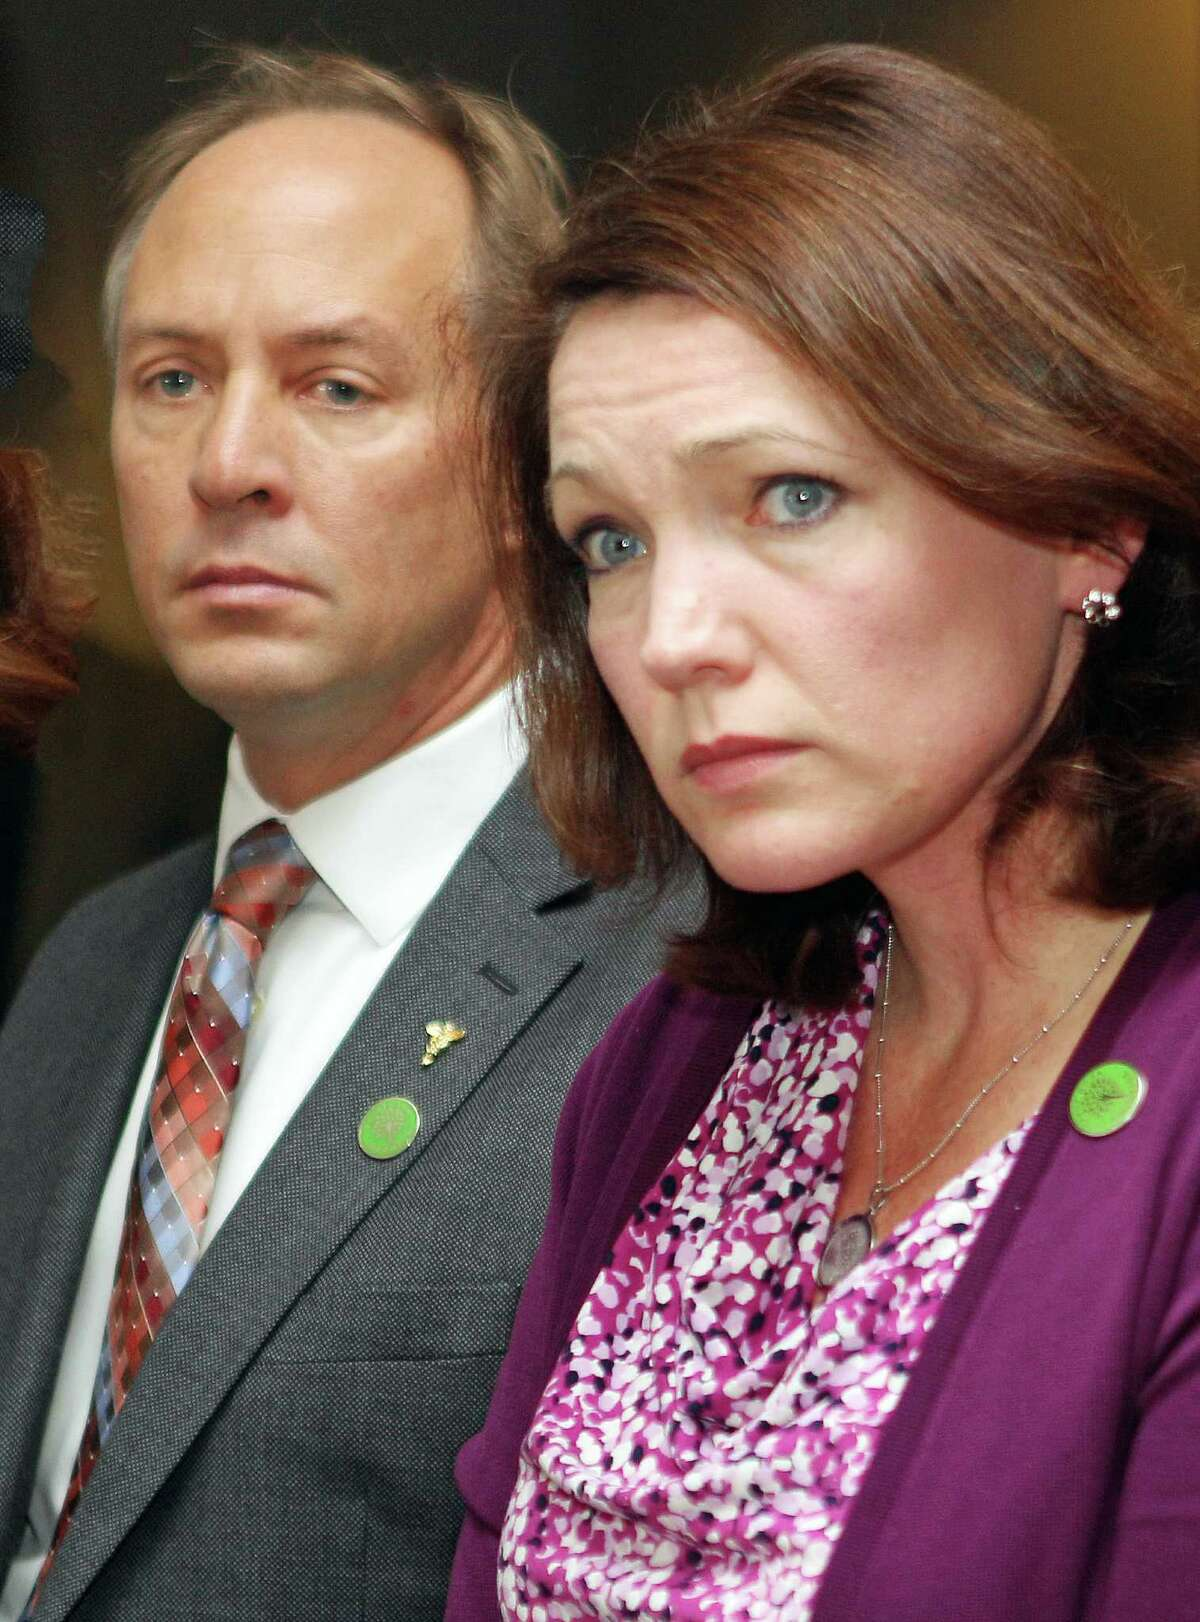 Mark Barden and Nicole Hockley, founders and managing directors of Sandy Hook Promise. File photo.